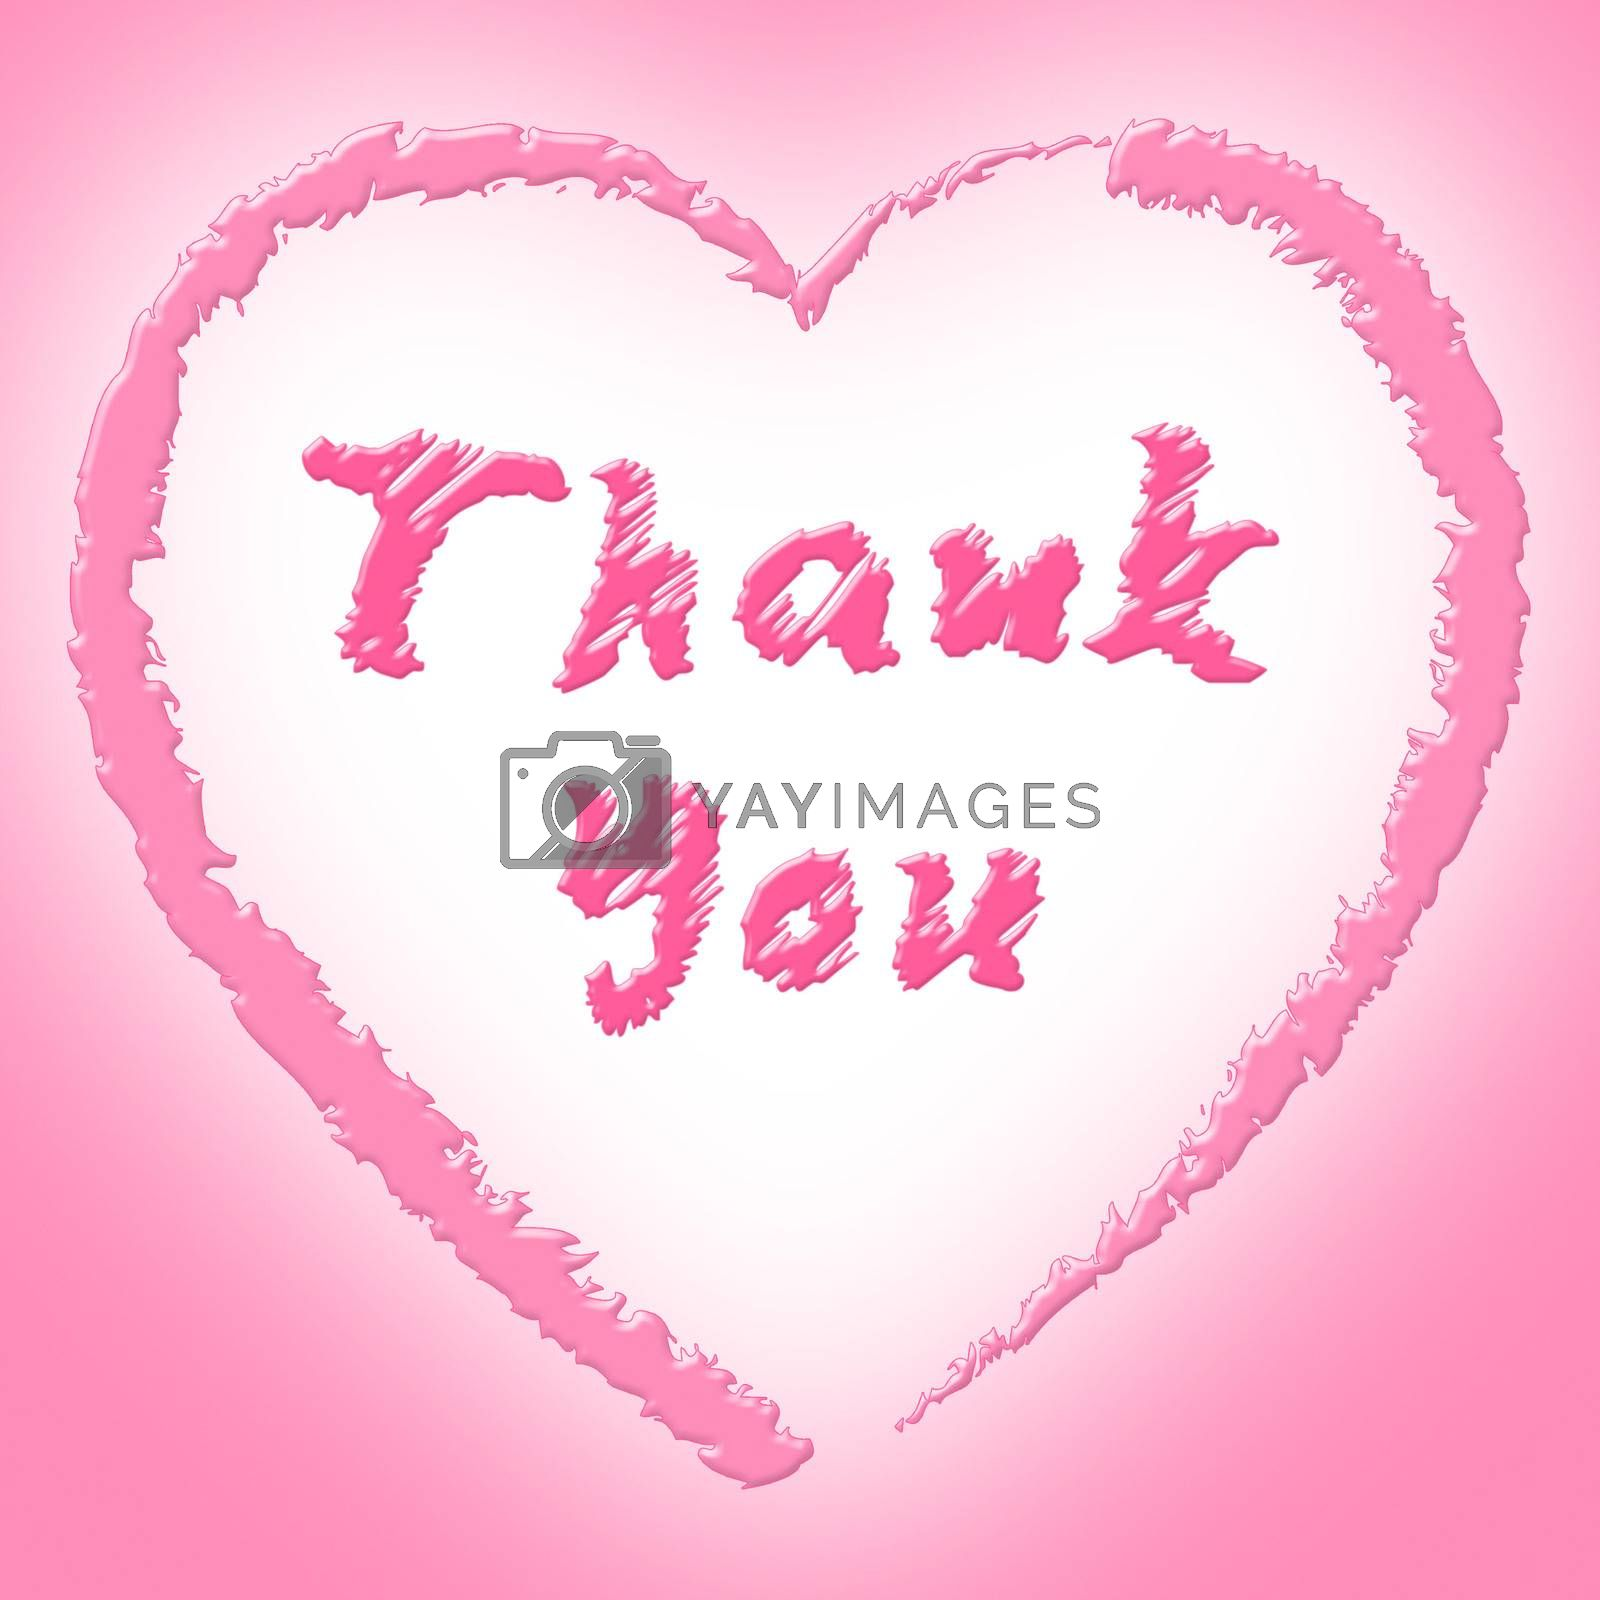 Thank You Representing Heart Shapes And Gratefulness